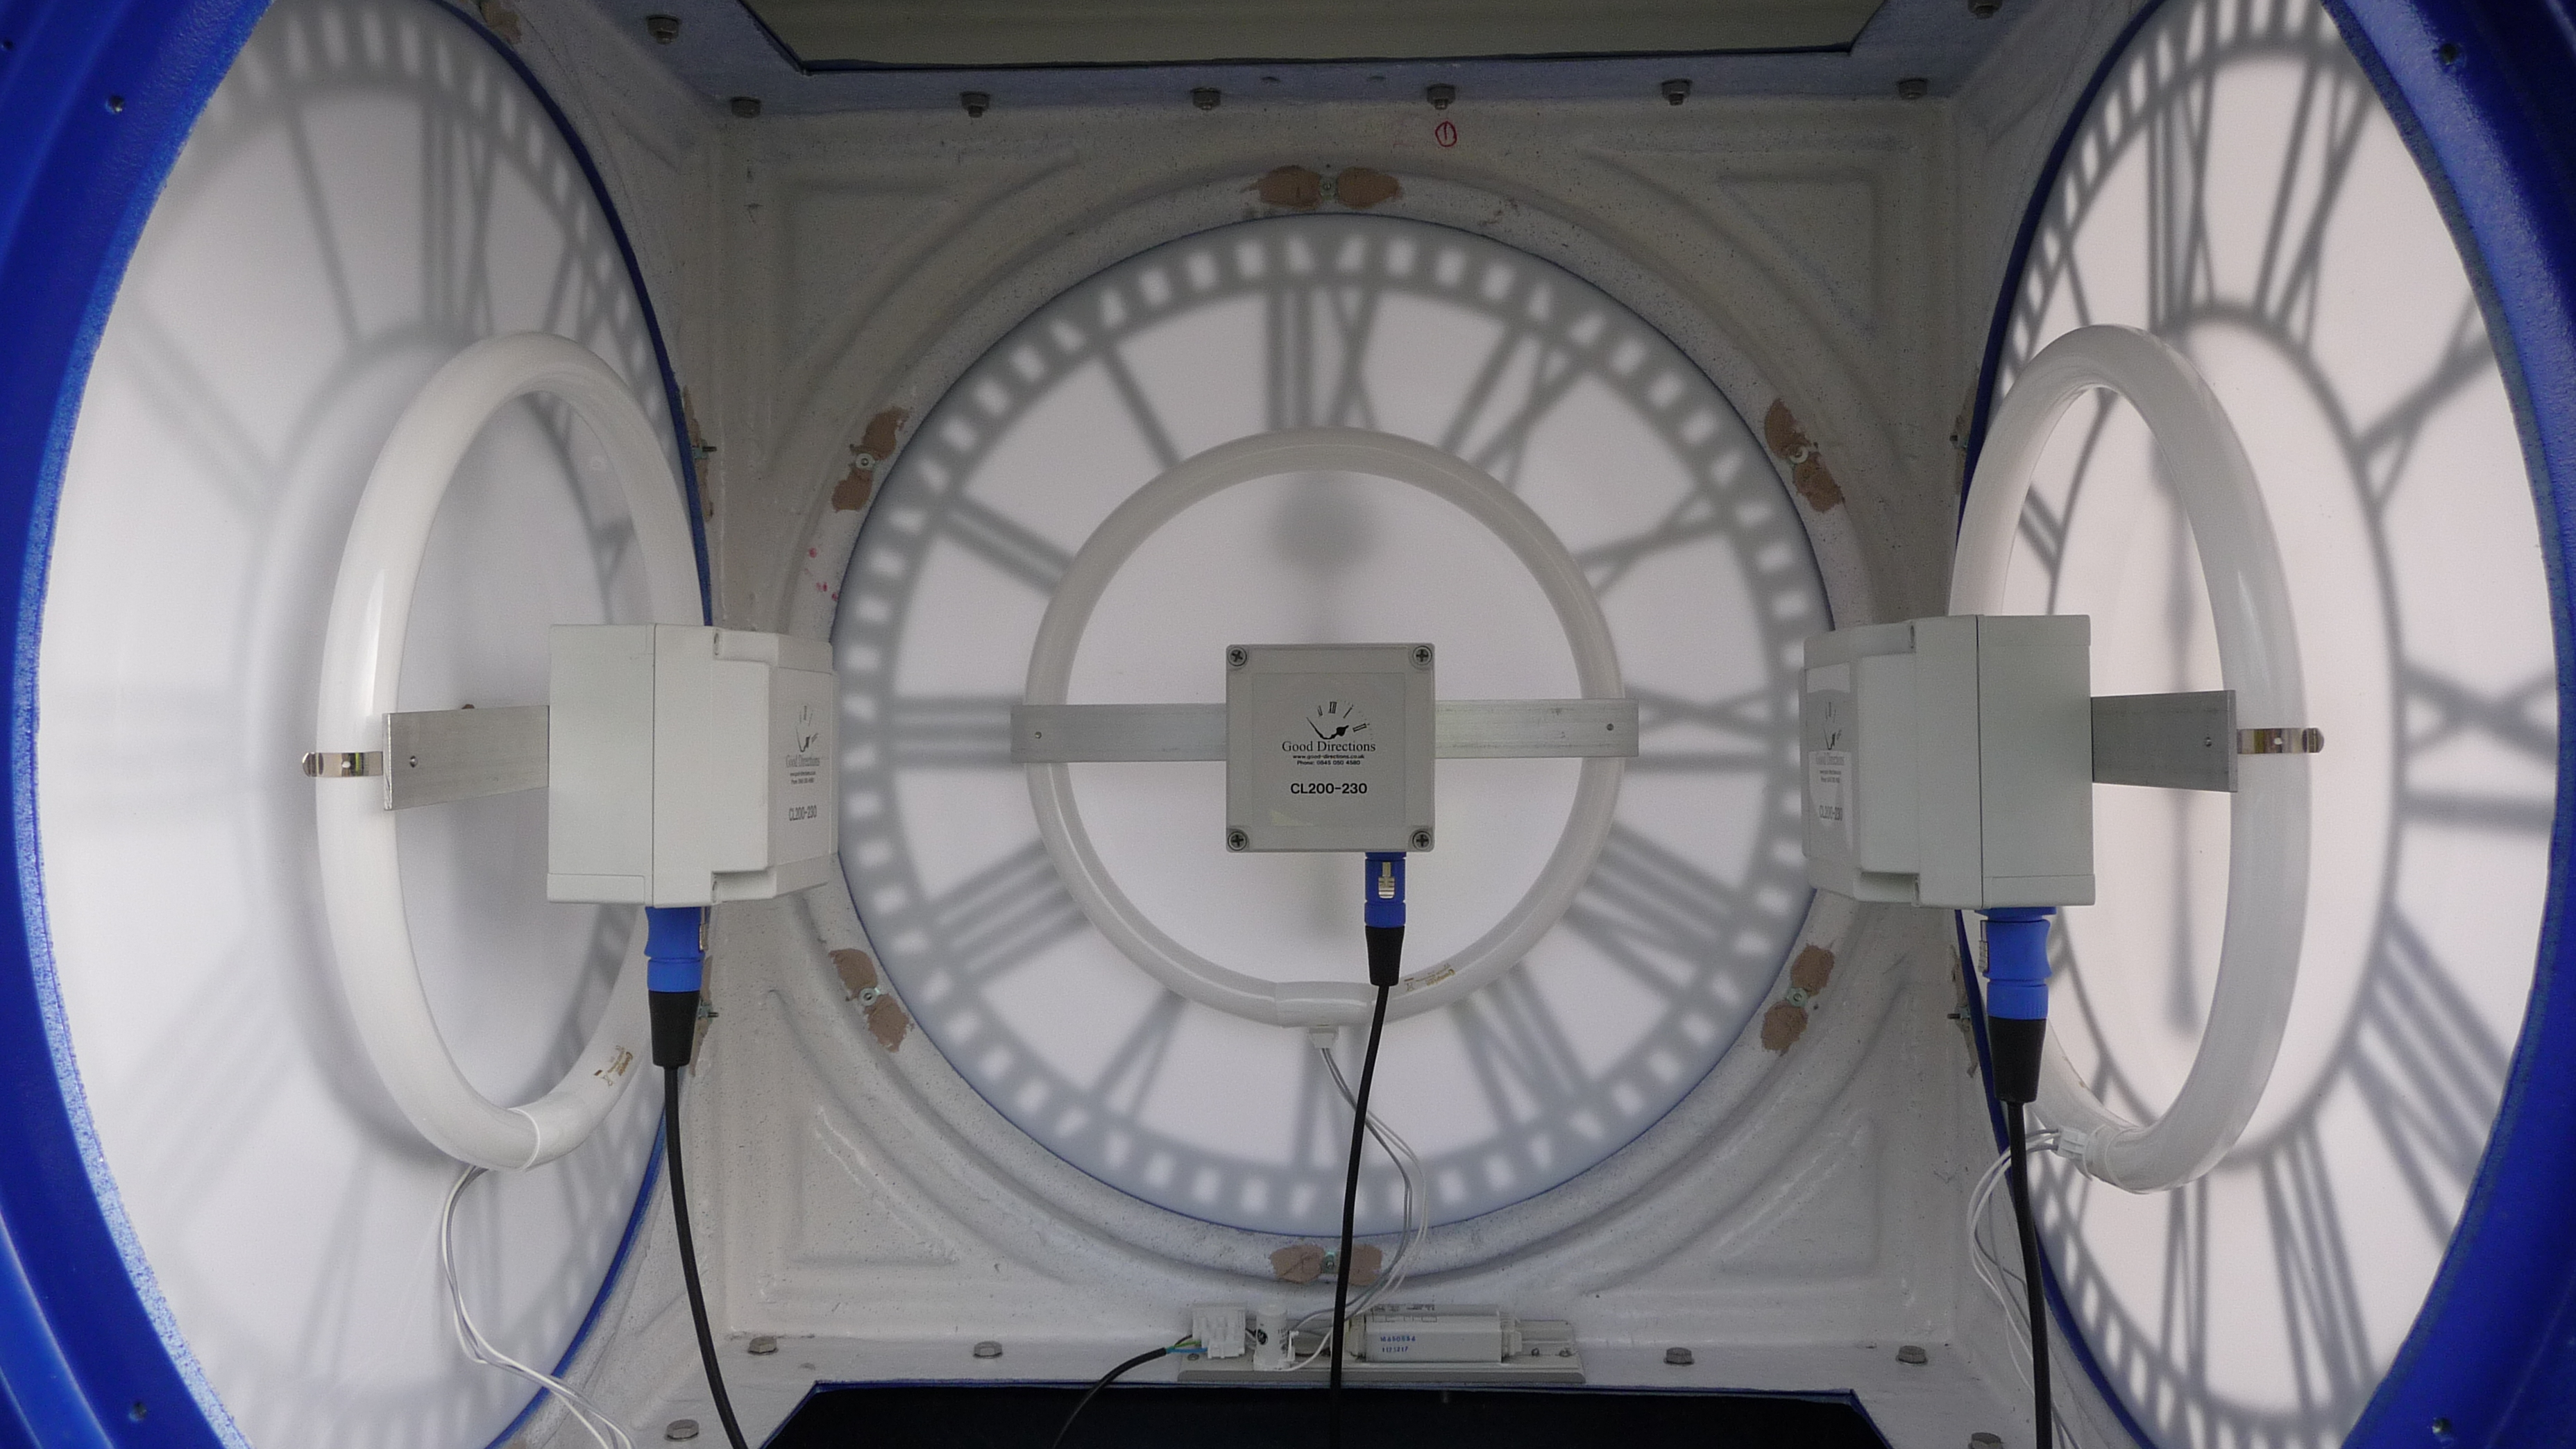 Inside a four dial pillar clock